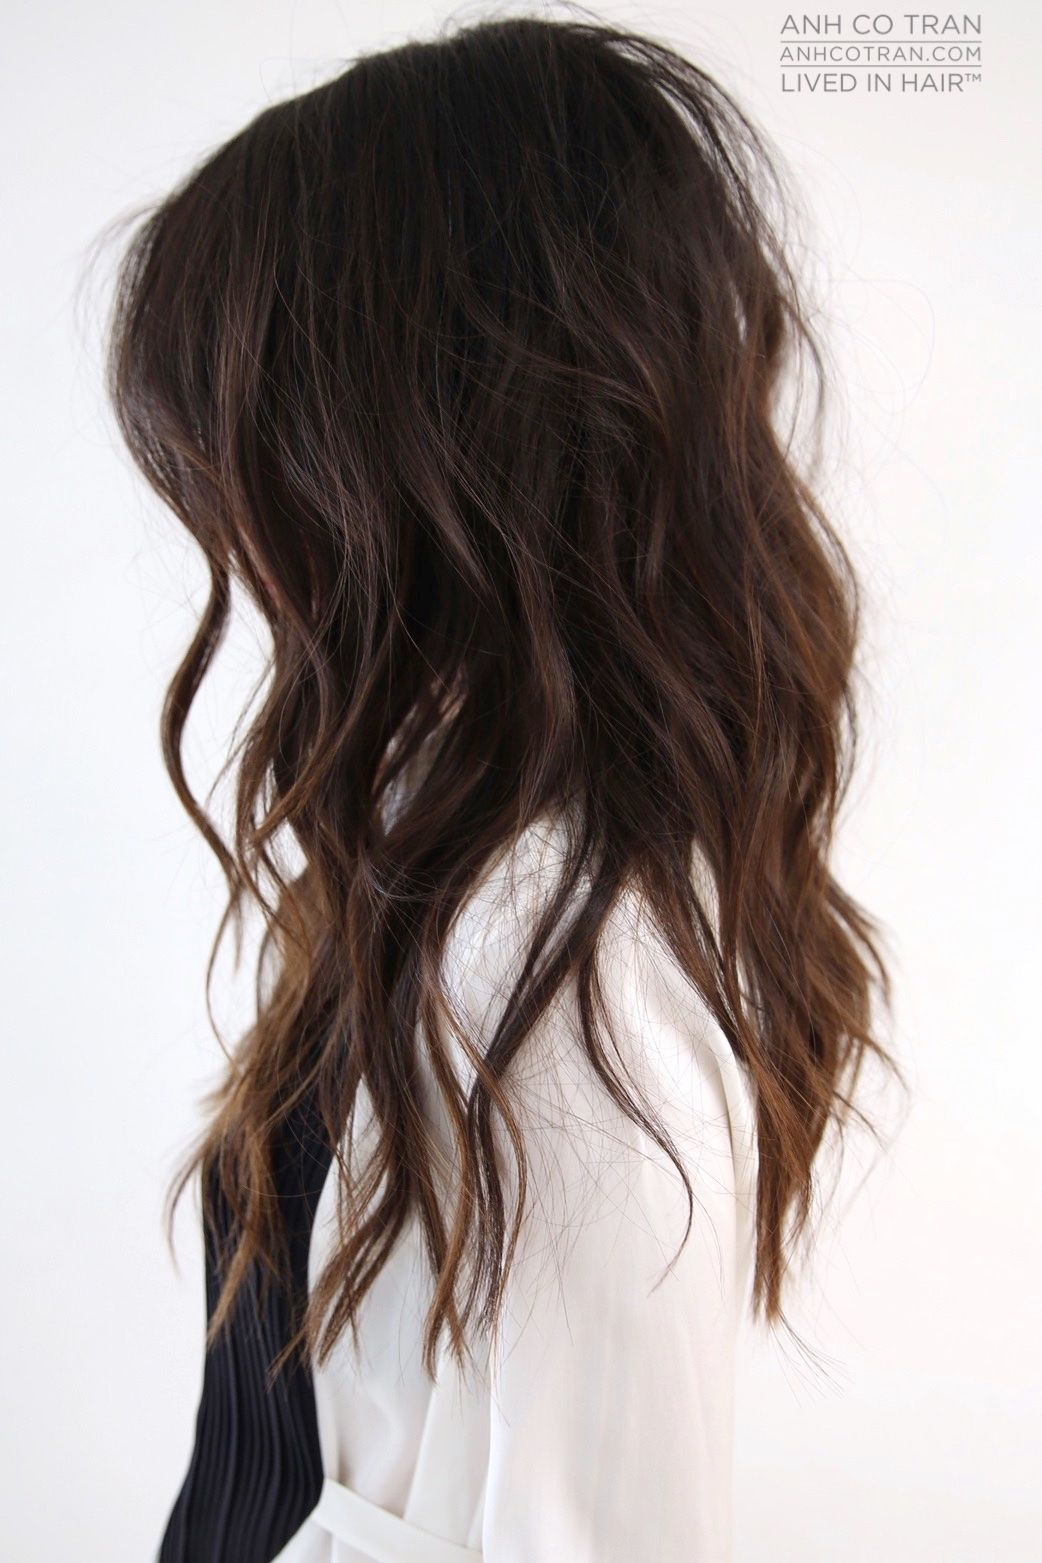 Get loose, beachy waves with piecey layers | Anh Co Tran ...